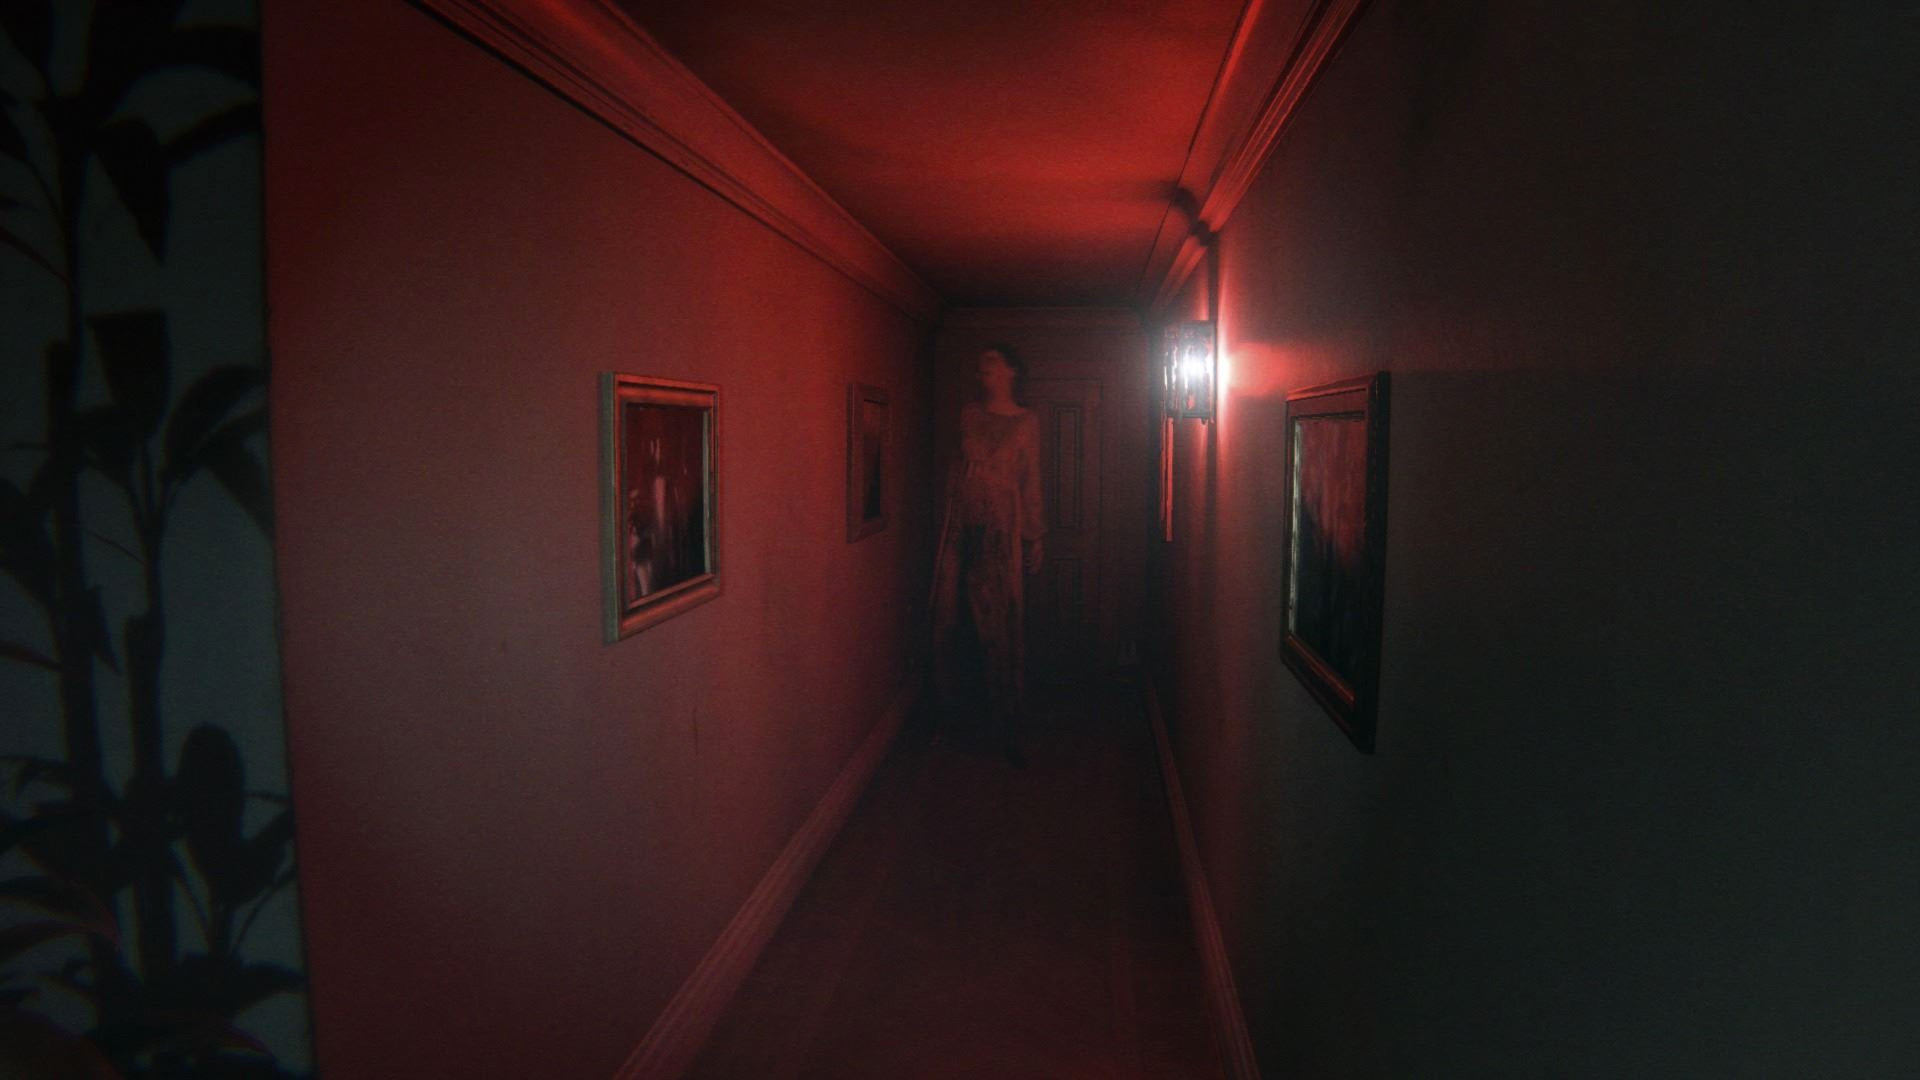 P.T. - woman at end of dimly lit red hallway